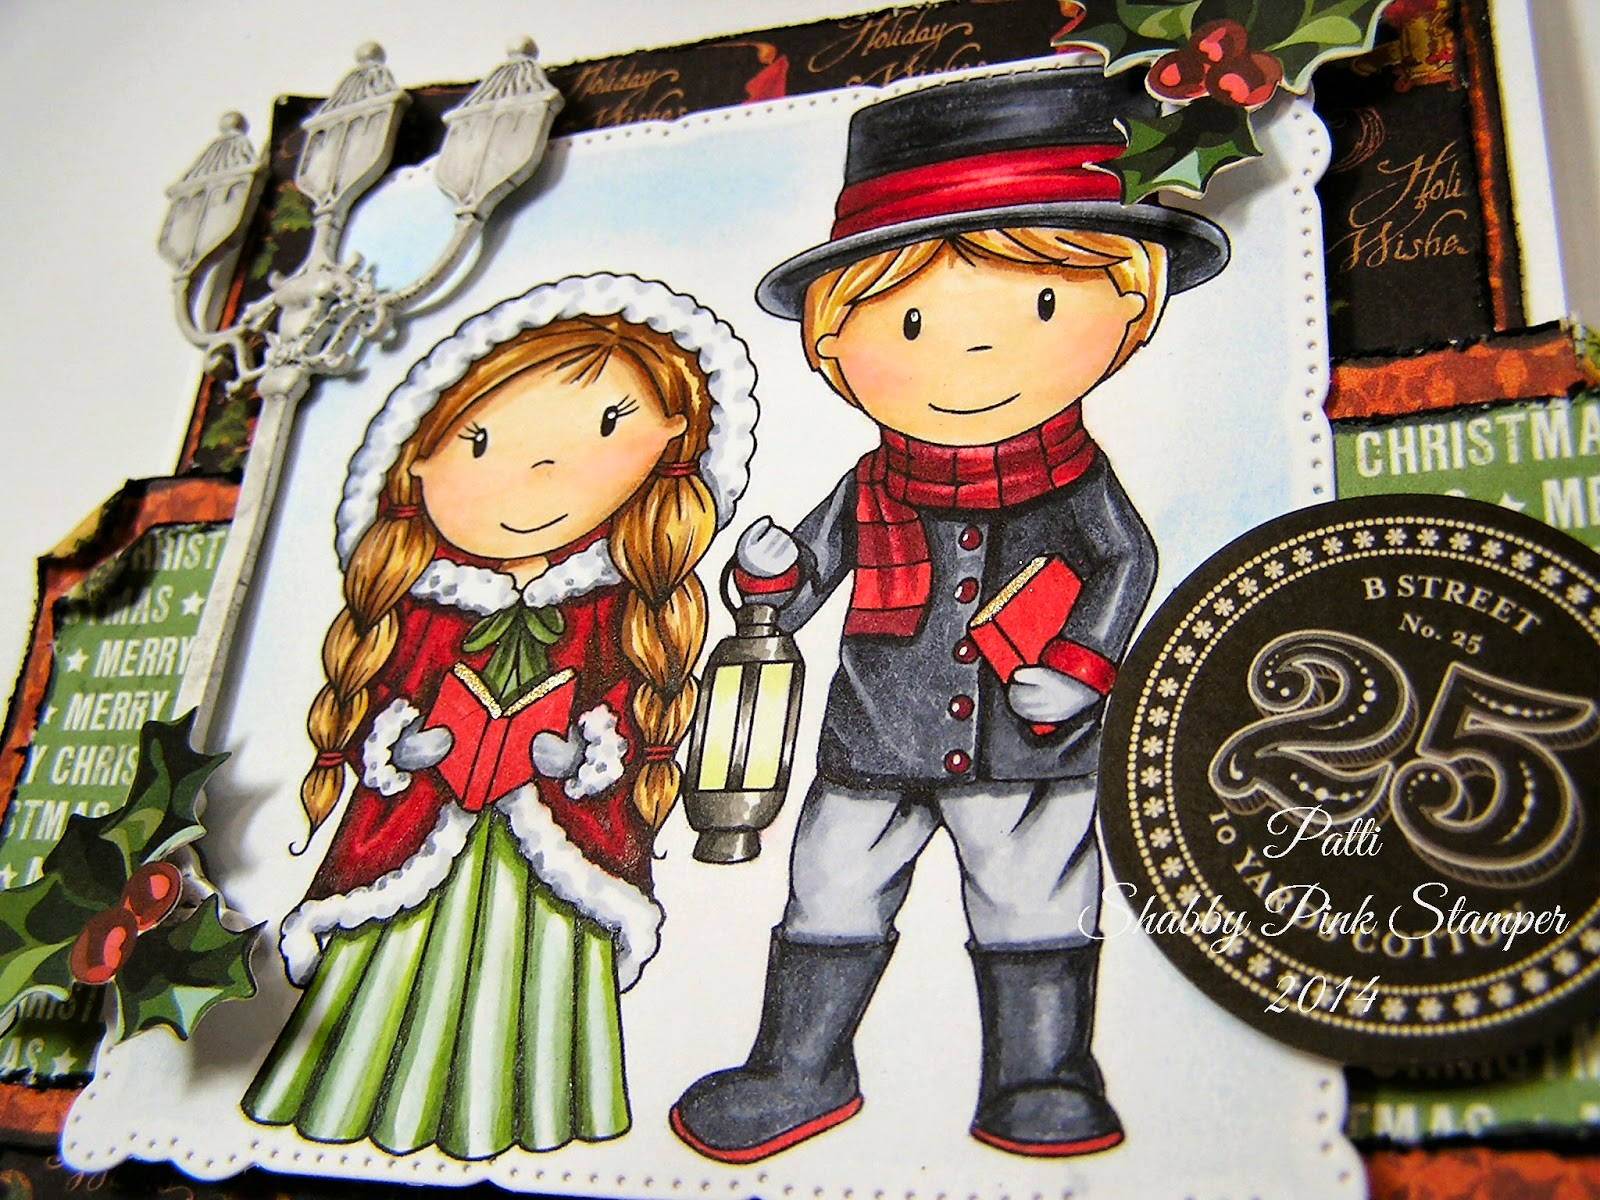 background of the stamped image is shaded with blue chalk - Christmas Carollers